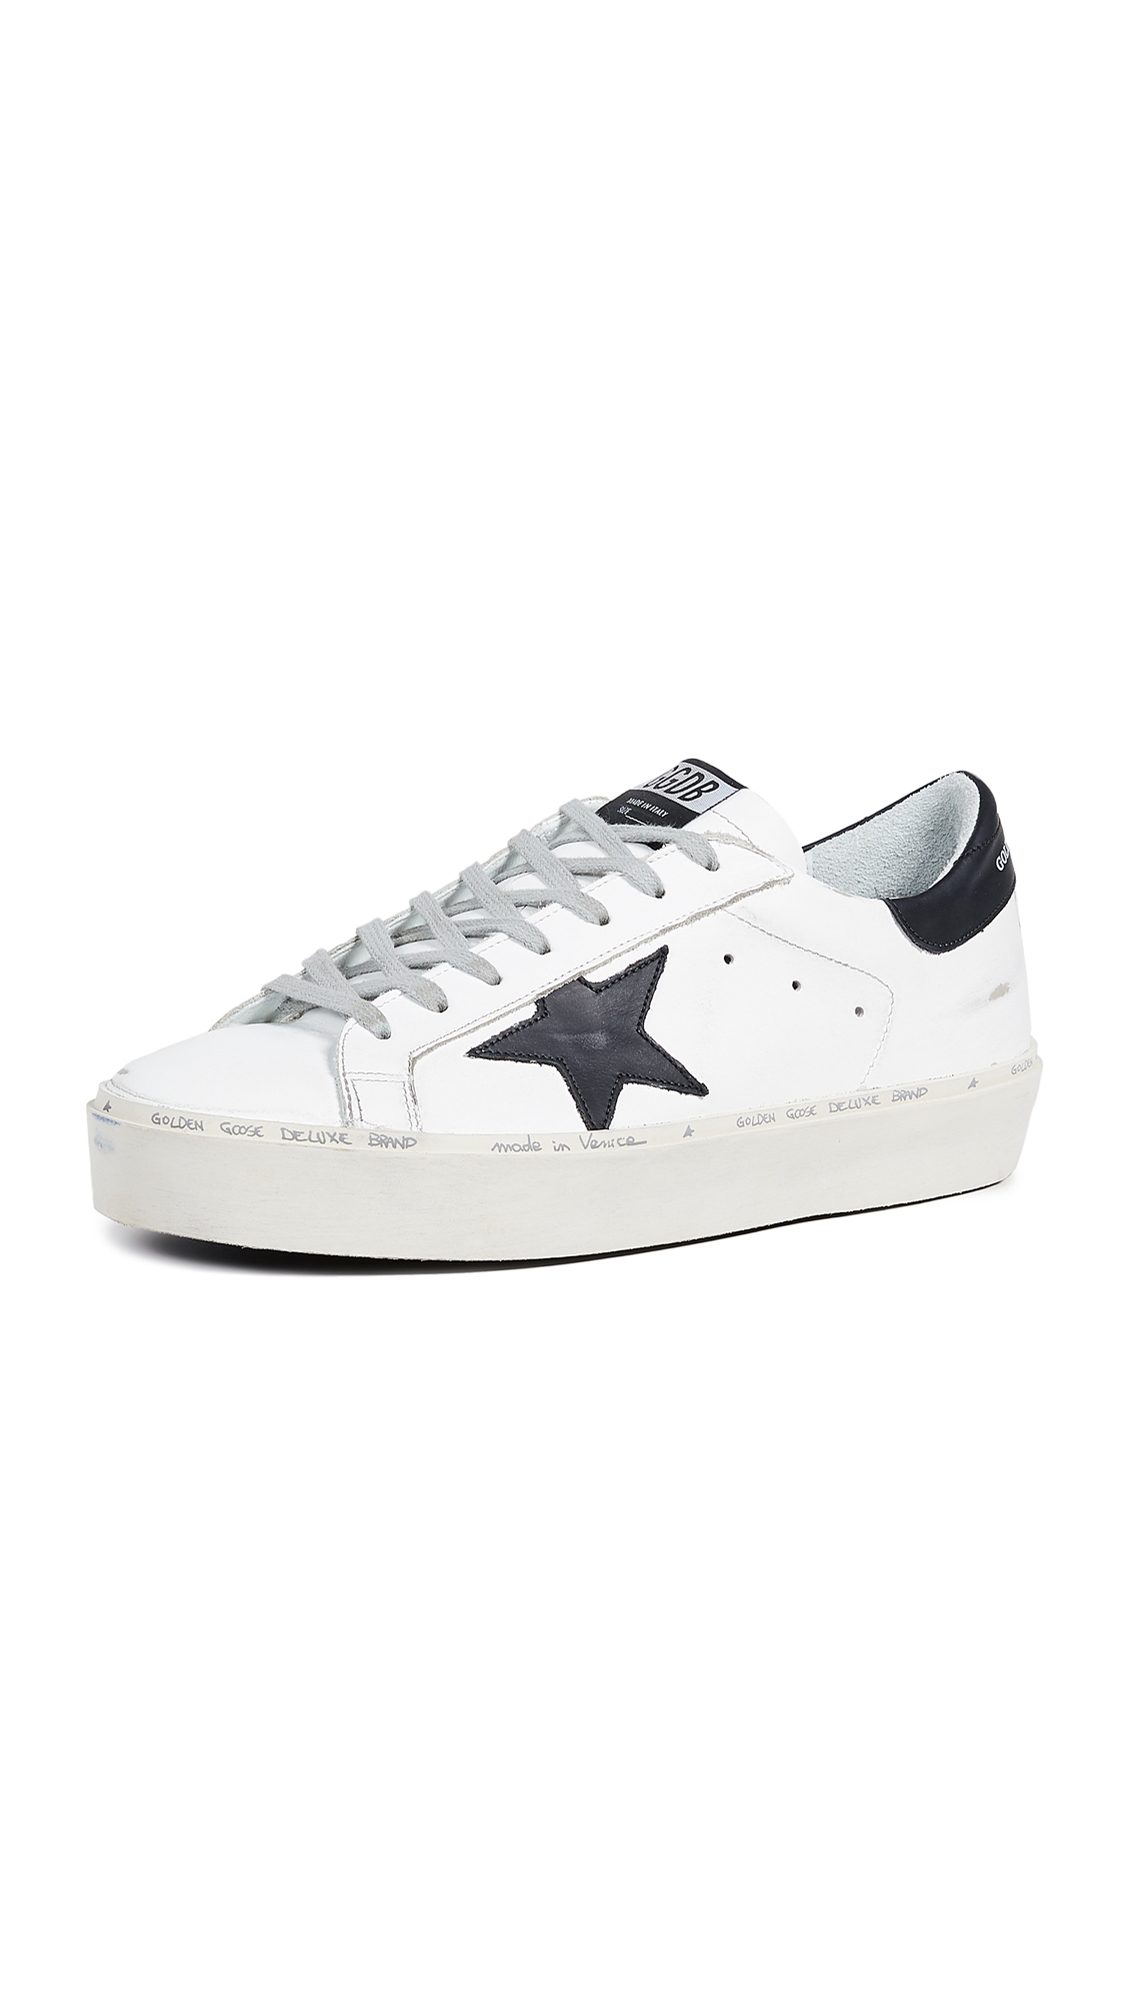 Star In Whiteblack Hi Sneakers Hi In In Star Sneakers Whiteblack Sneakers Hi Star xBErCQWode